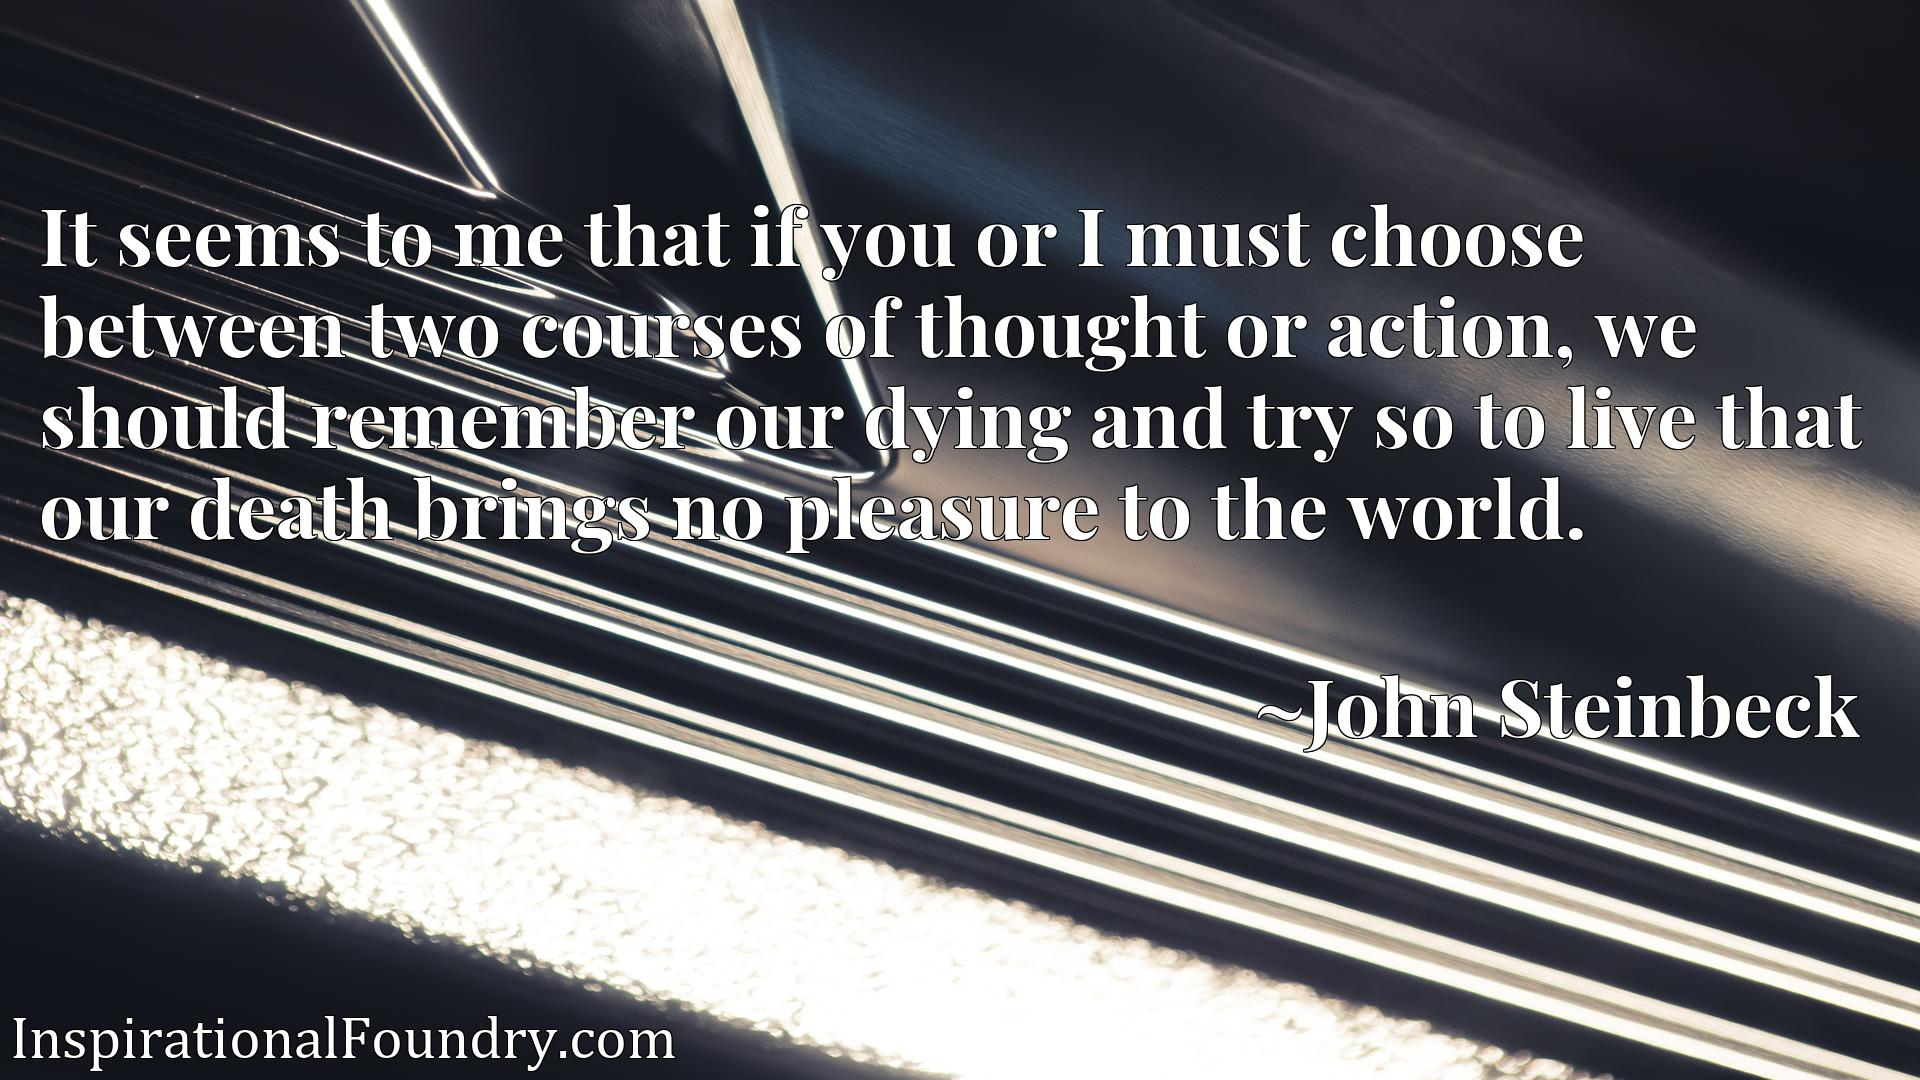 Quote Picture :It seems to me that if you or I must choose between two courses of thought or action, we should remember our dying and try so to live that our death brings no pleasure to the world.